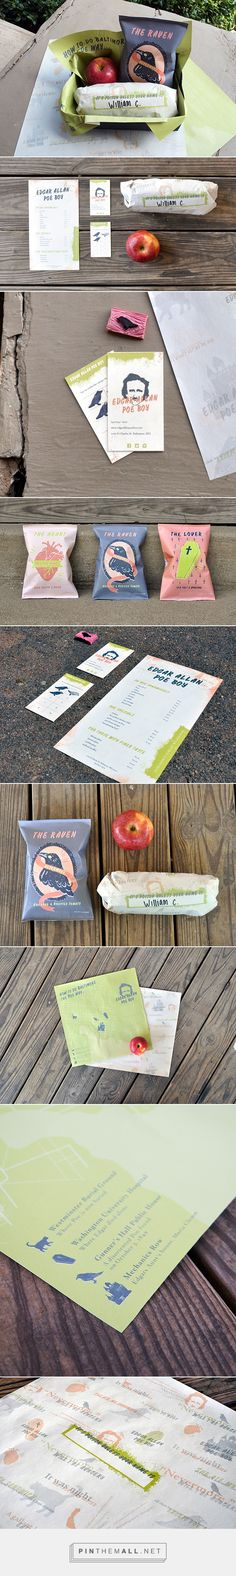 Edgar Allan Poe Boy, Sandwich Shop packaging branding on Behance by Parker Jones. I'm planning on reading at lunch how about you : ) PD